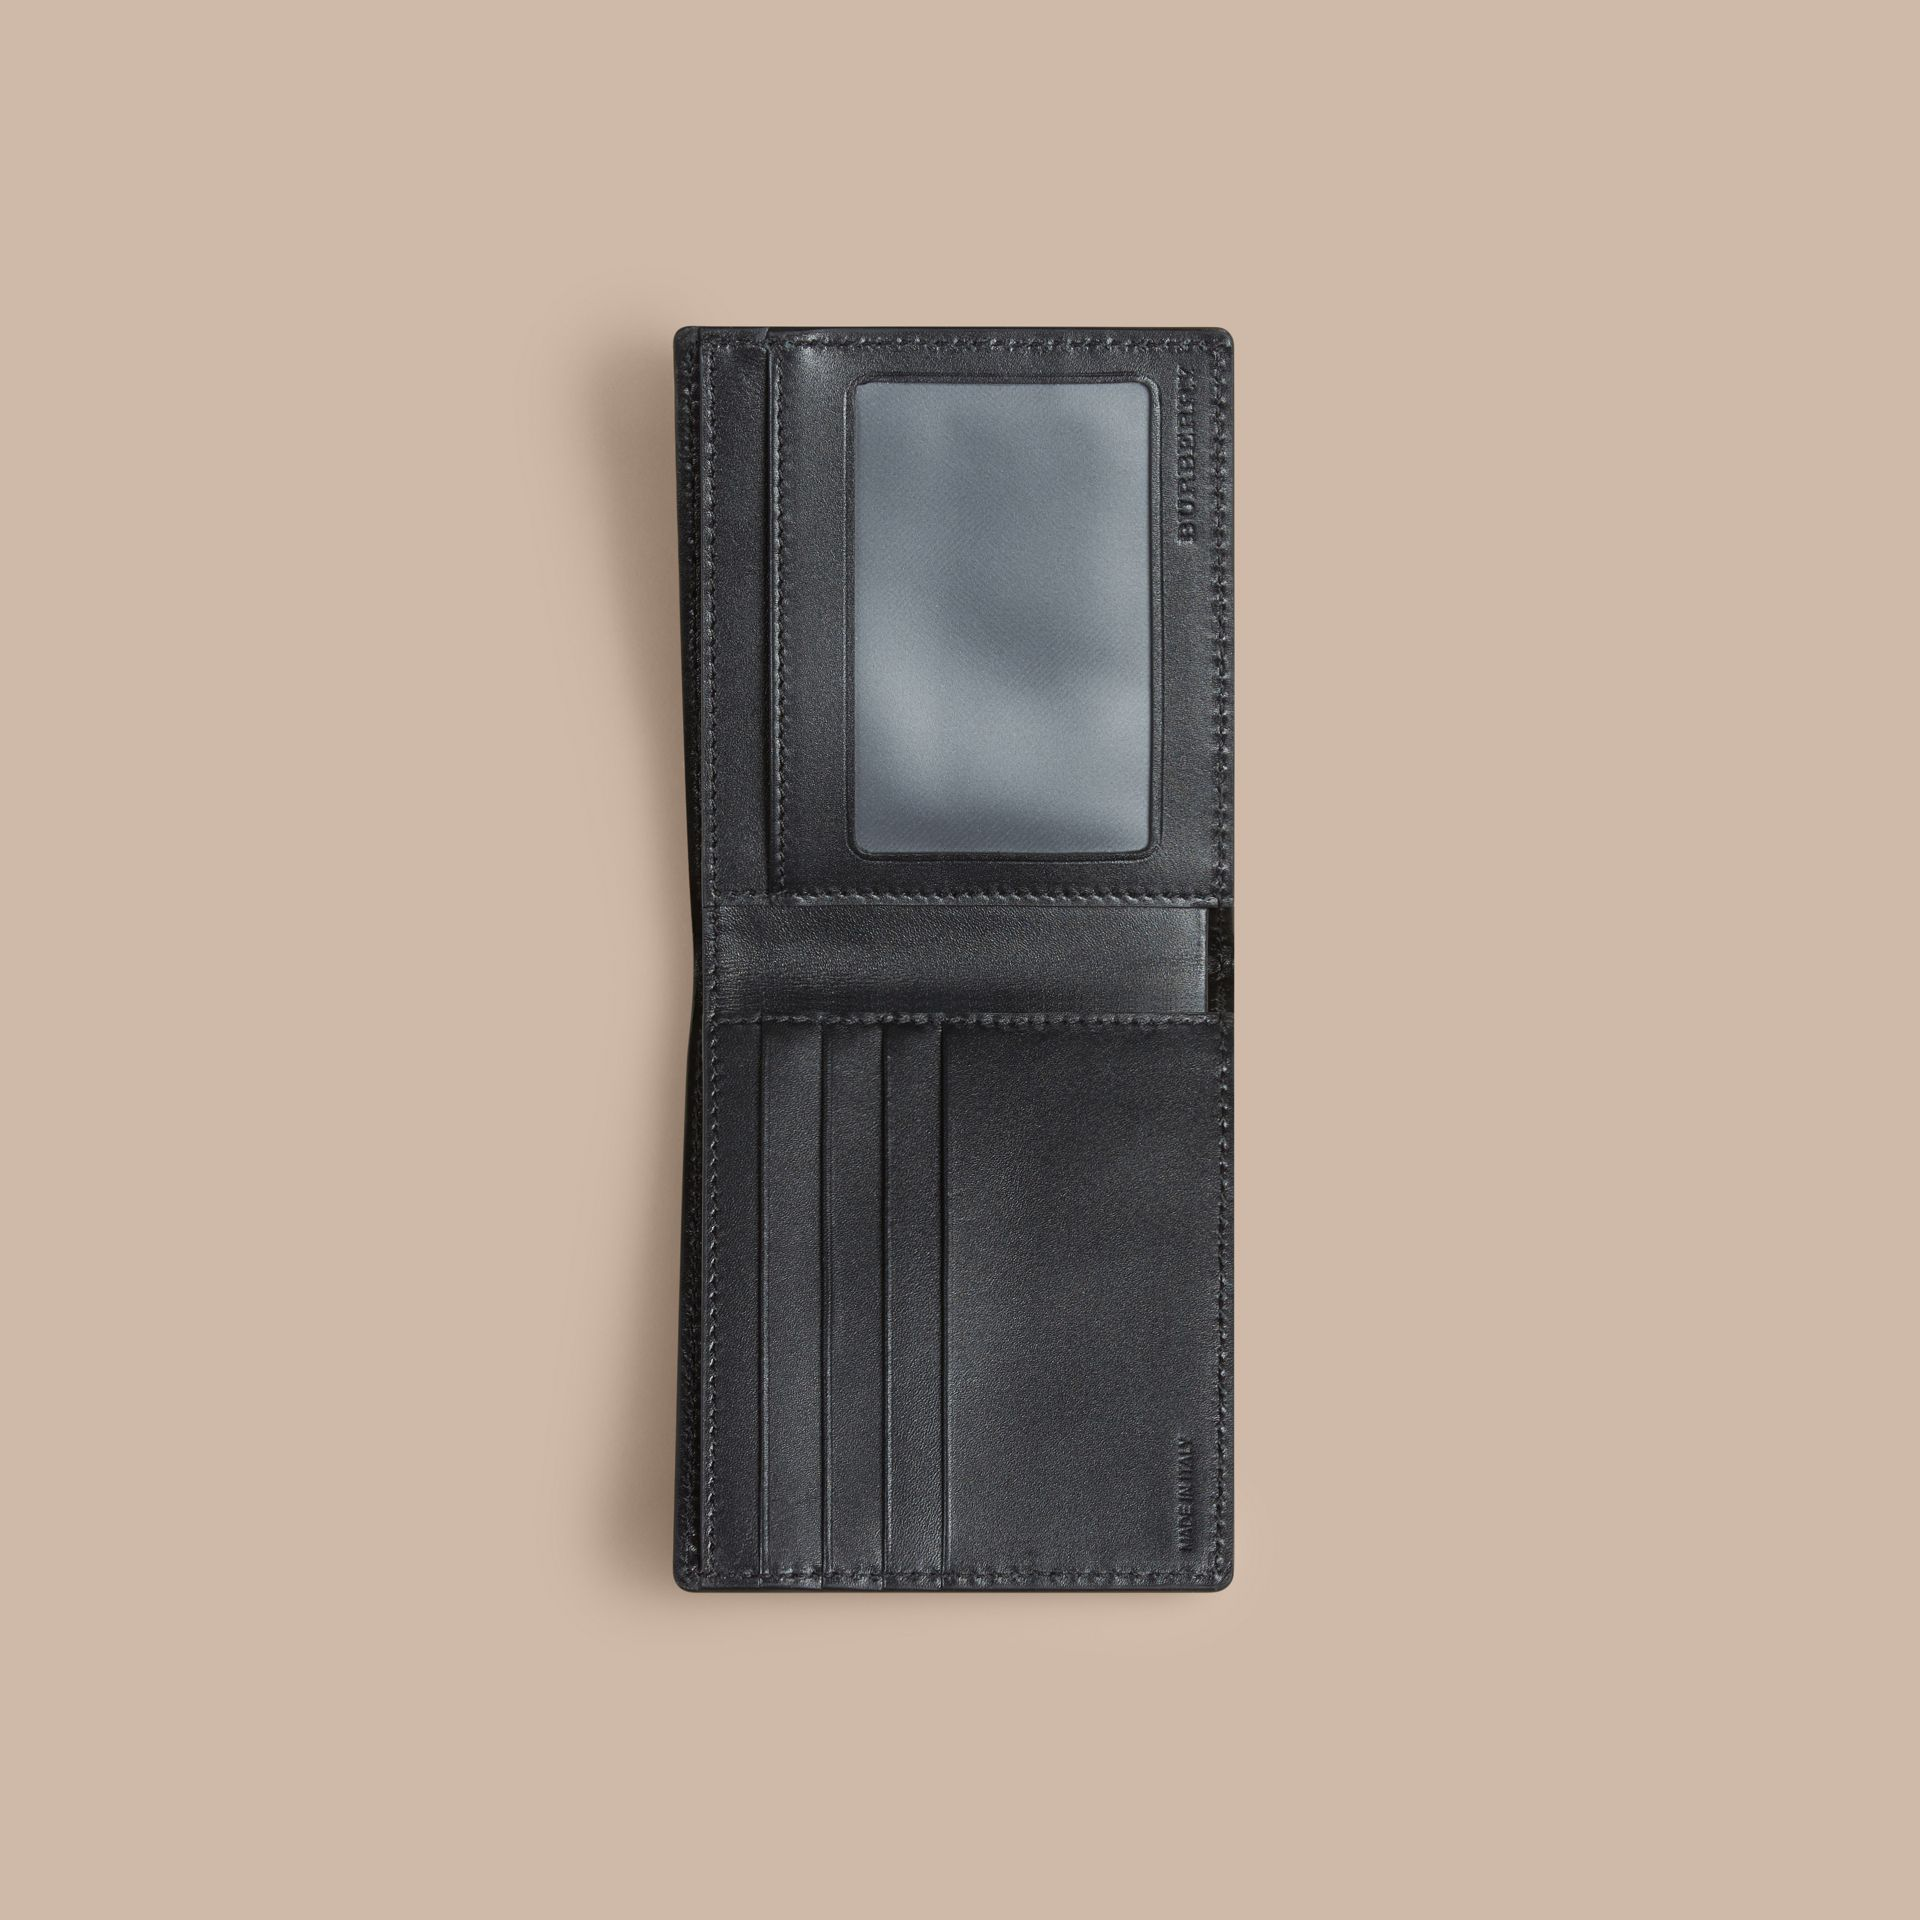 London Leather ID Wallet in Black - Men | Burberry Canada - gallery image 4